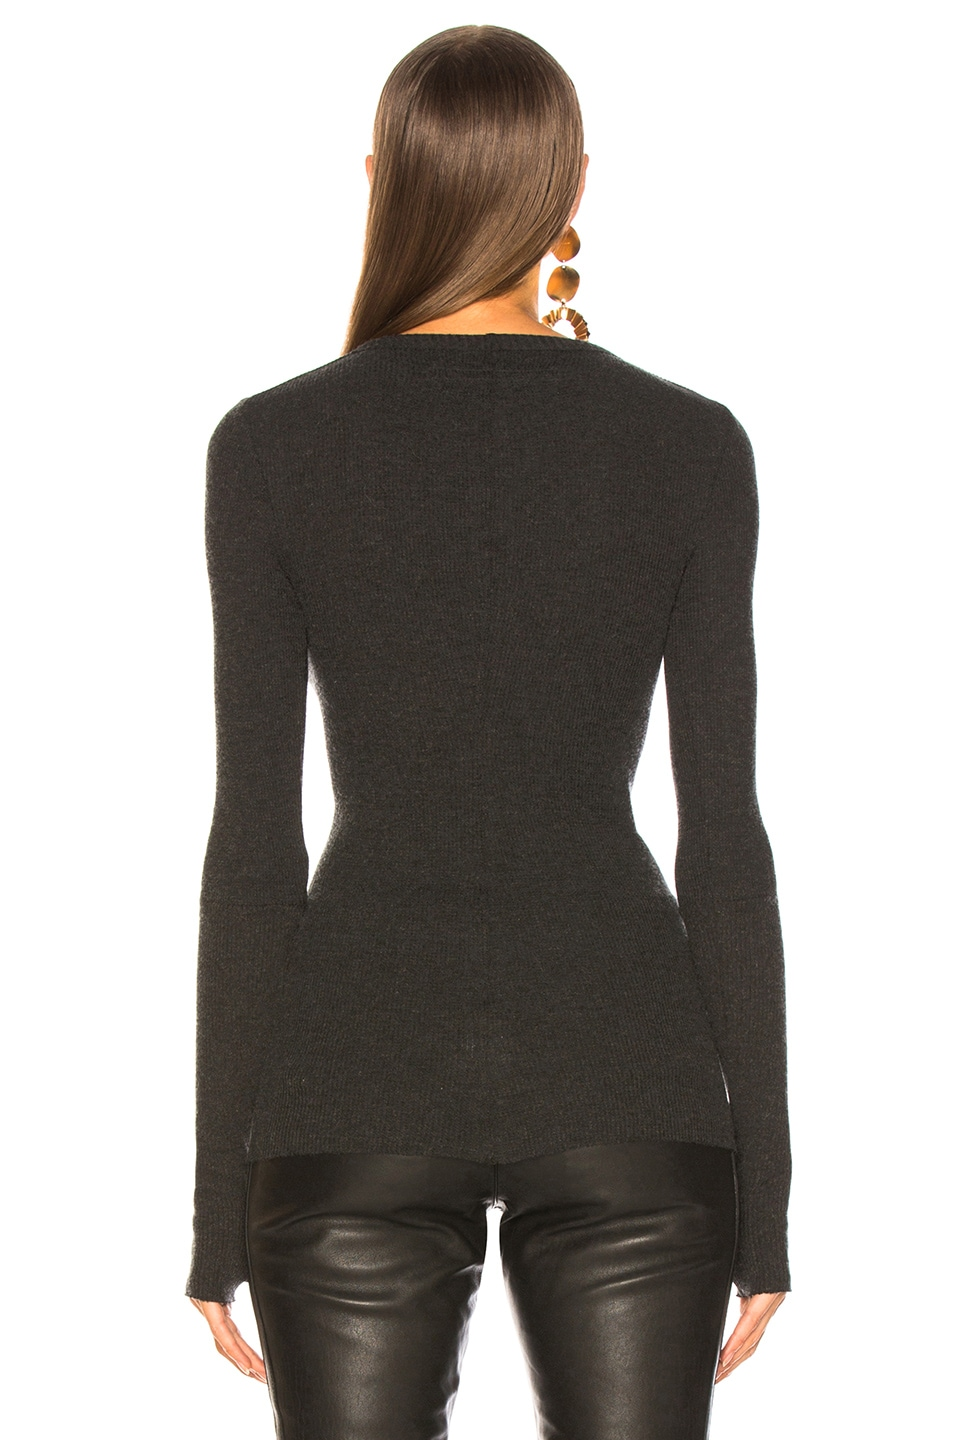 Image 4 of Enza Costa Cashmere Thermal Cuffed Long Sleeve Crew in Charcoal